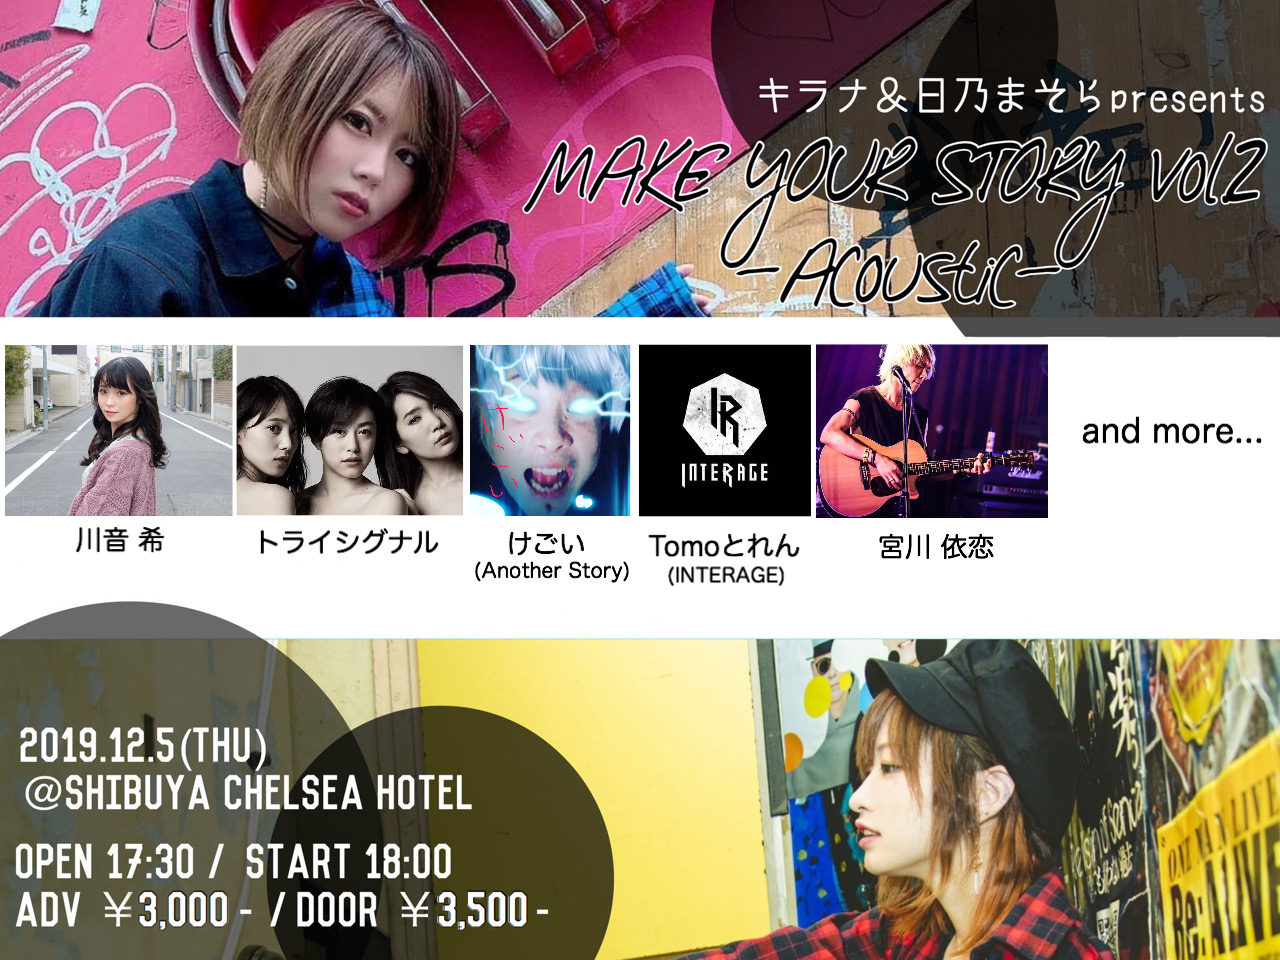 【キラナ & 日乃まそら presents MAKE YOUR STORY AcousticVol.2】